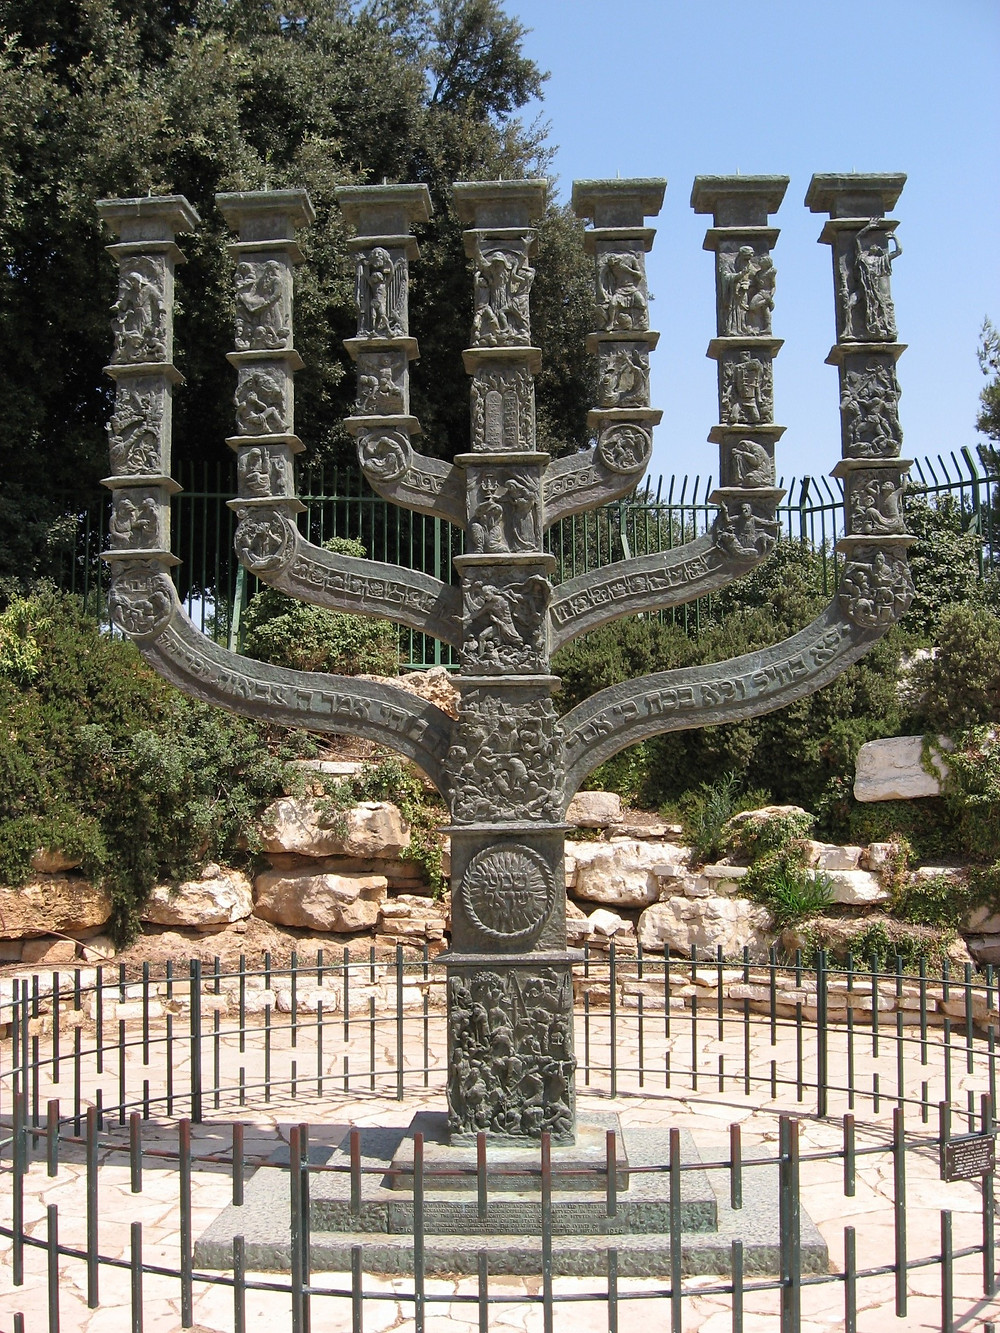 The menorah (/məˈnɔːrə/; Hebrew: מְנוֹרָה [mənoːˈɾaː]) is described in the Bible as the seven-lamp (six branches) ancient Hebrew lampstand made of pure gold and used in the portable sanctuary set up by Moses in the wilderness and later in the Temple in Jerusalem. Fresh olive oil of the purest quality was burned daily to light its lamps. The menorah has been a symbol of Judaism since ancient times and is the emblem on the coat of arms of the modern state of Israel. From Wikipedia, the free encyclopedia